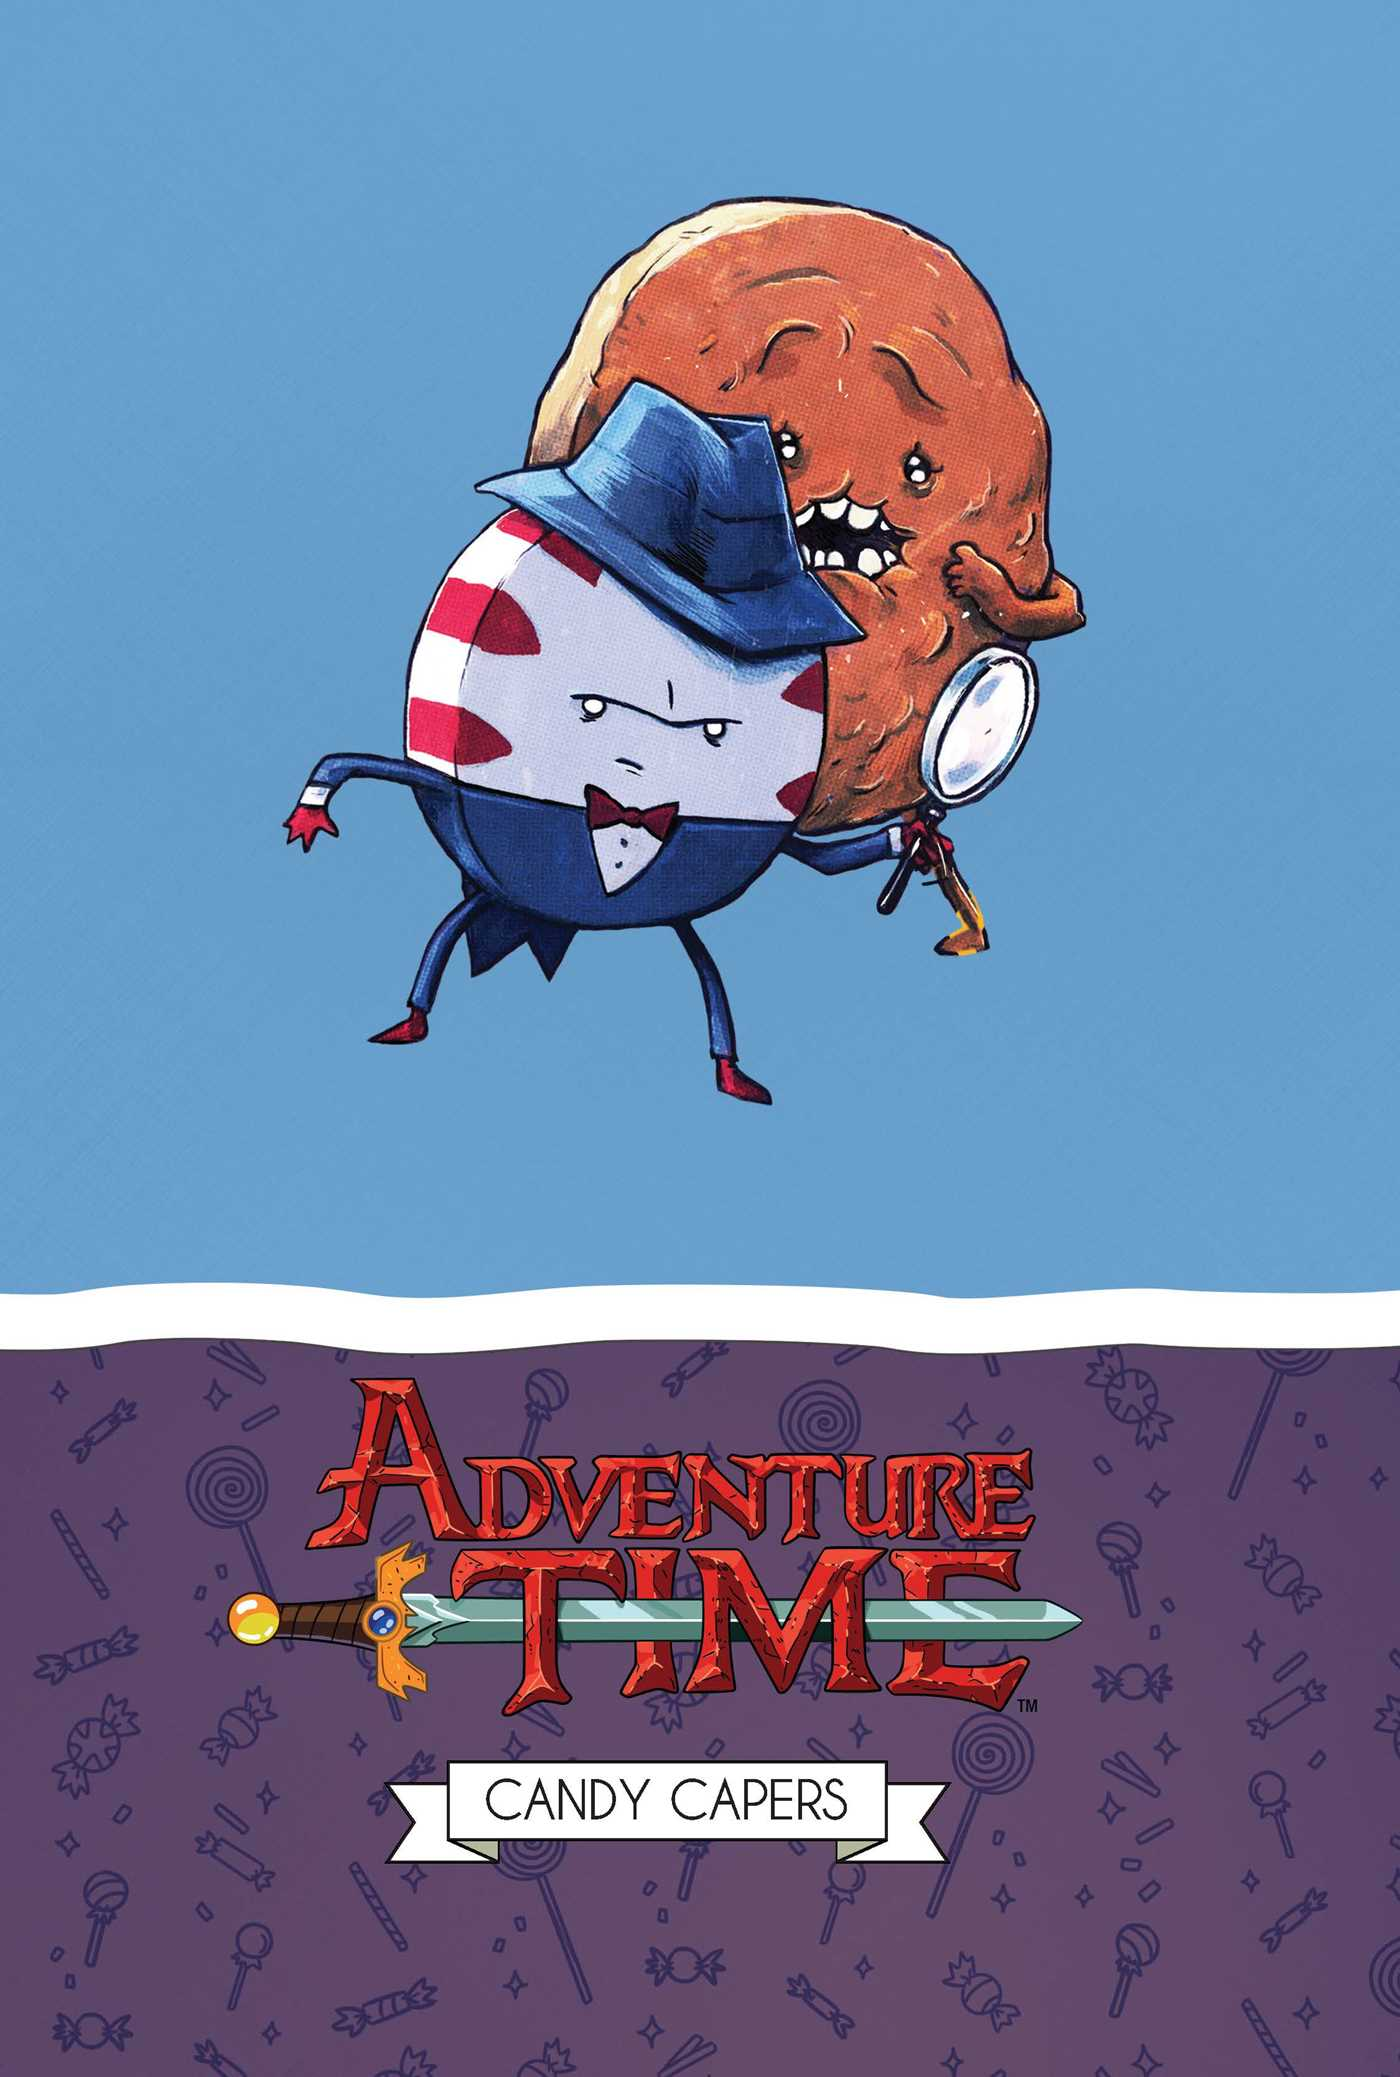 Adventure-time-candy-capers-mathematical-edition-9781608864584_hr